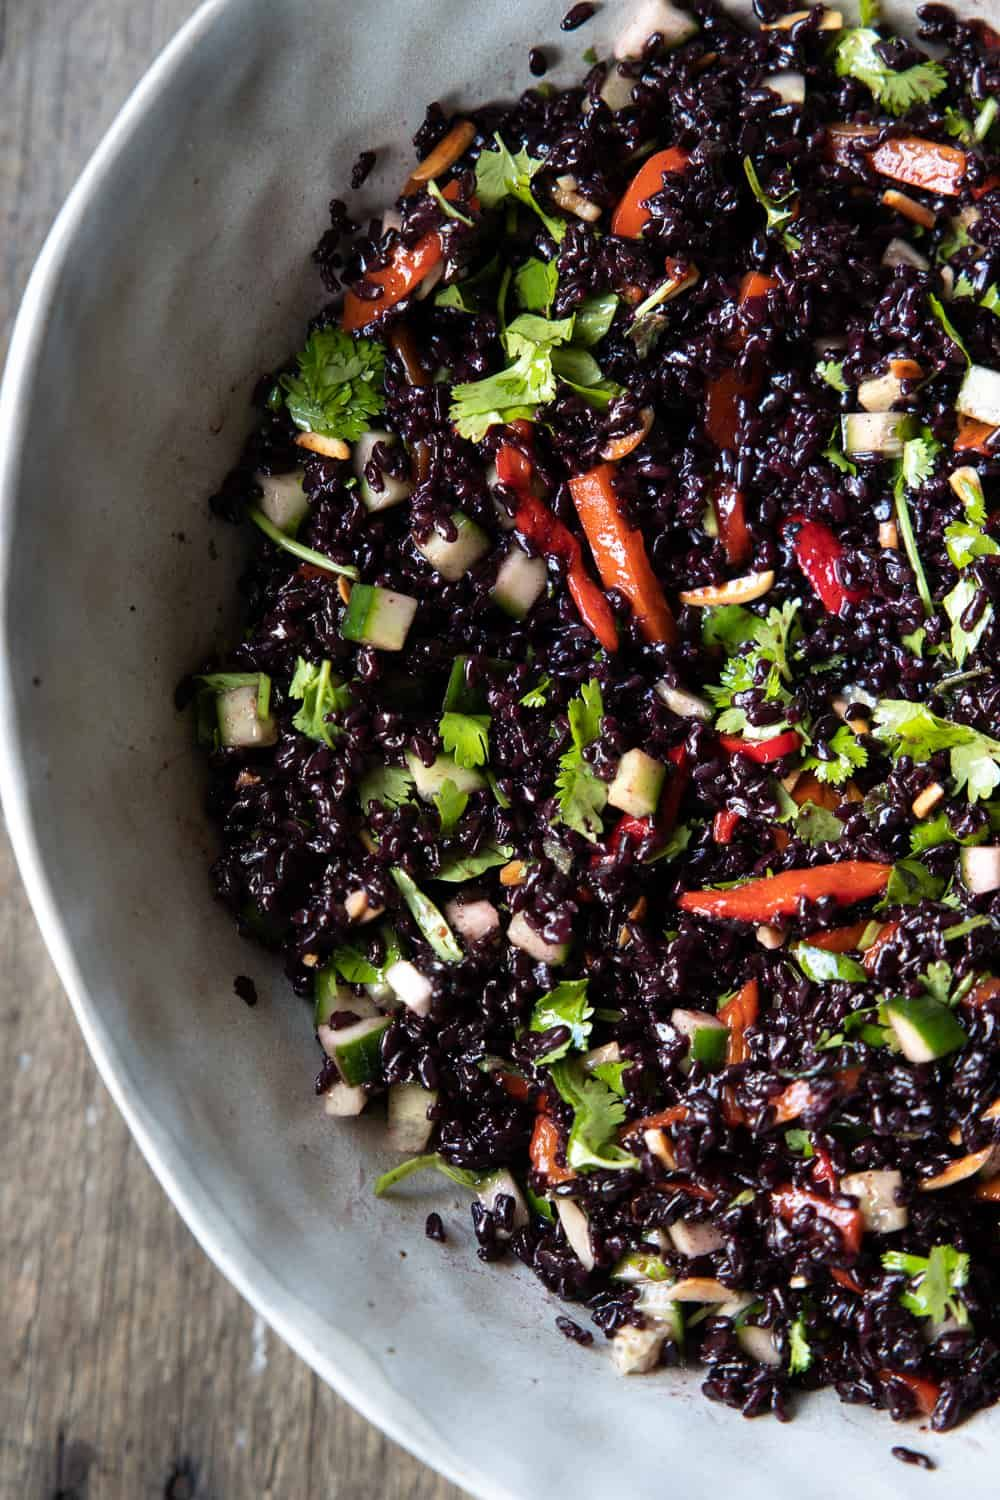 Black Rice Salad With Spicy Toasted Sesame Dressing The Minimalist Vegan Recipe In 2021 Black Rice Salad Rice Recipes Vegan Rice Salad